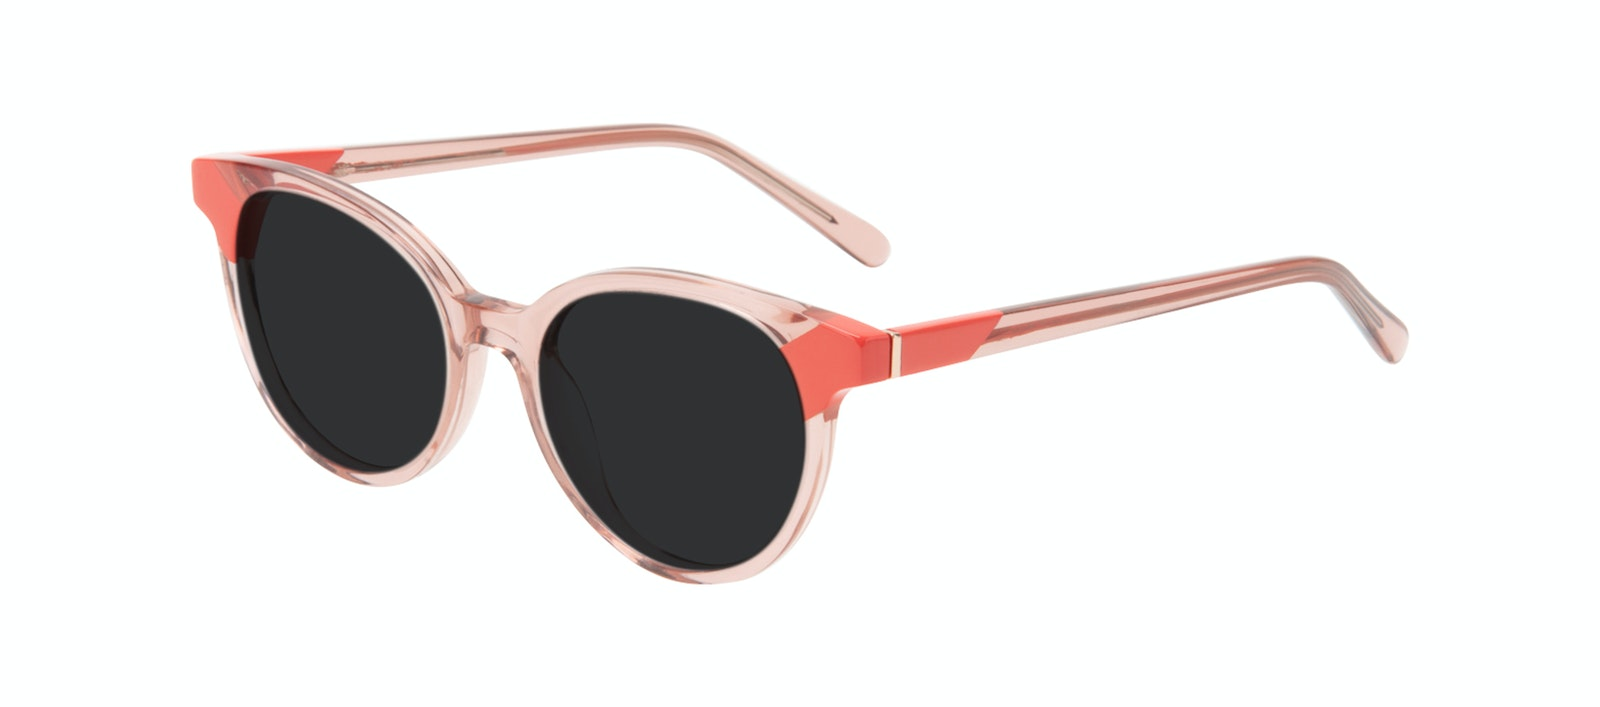 Affordable Fashion Glasses Round Sunglasses Women Bright Pink Coral Tilt